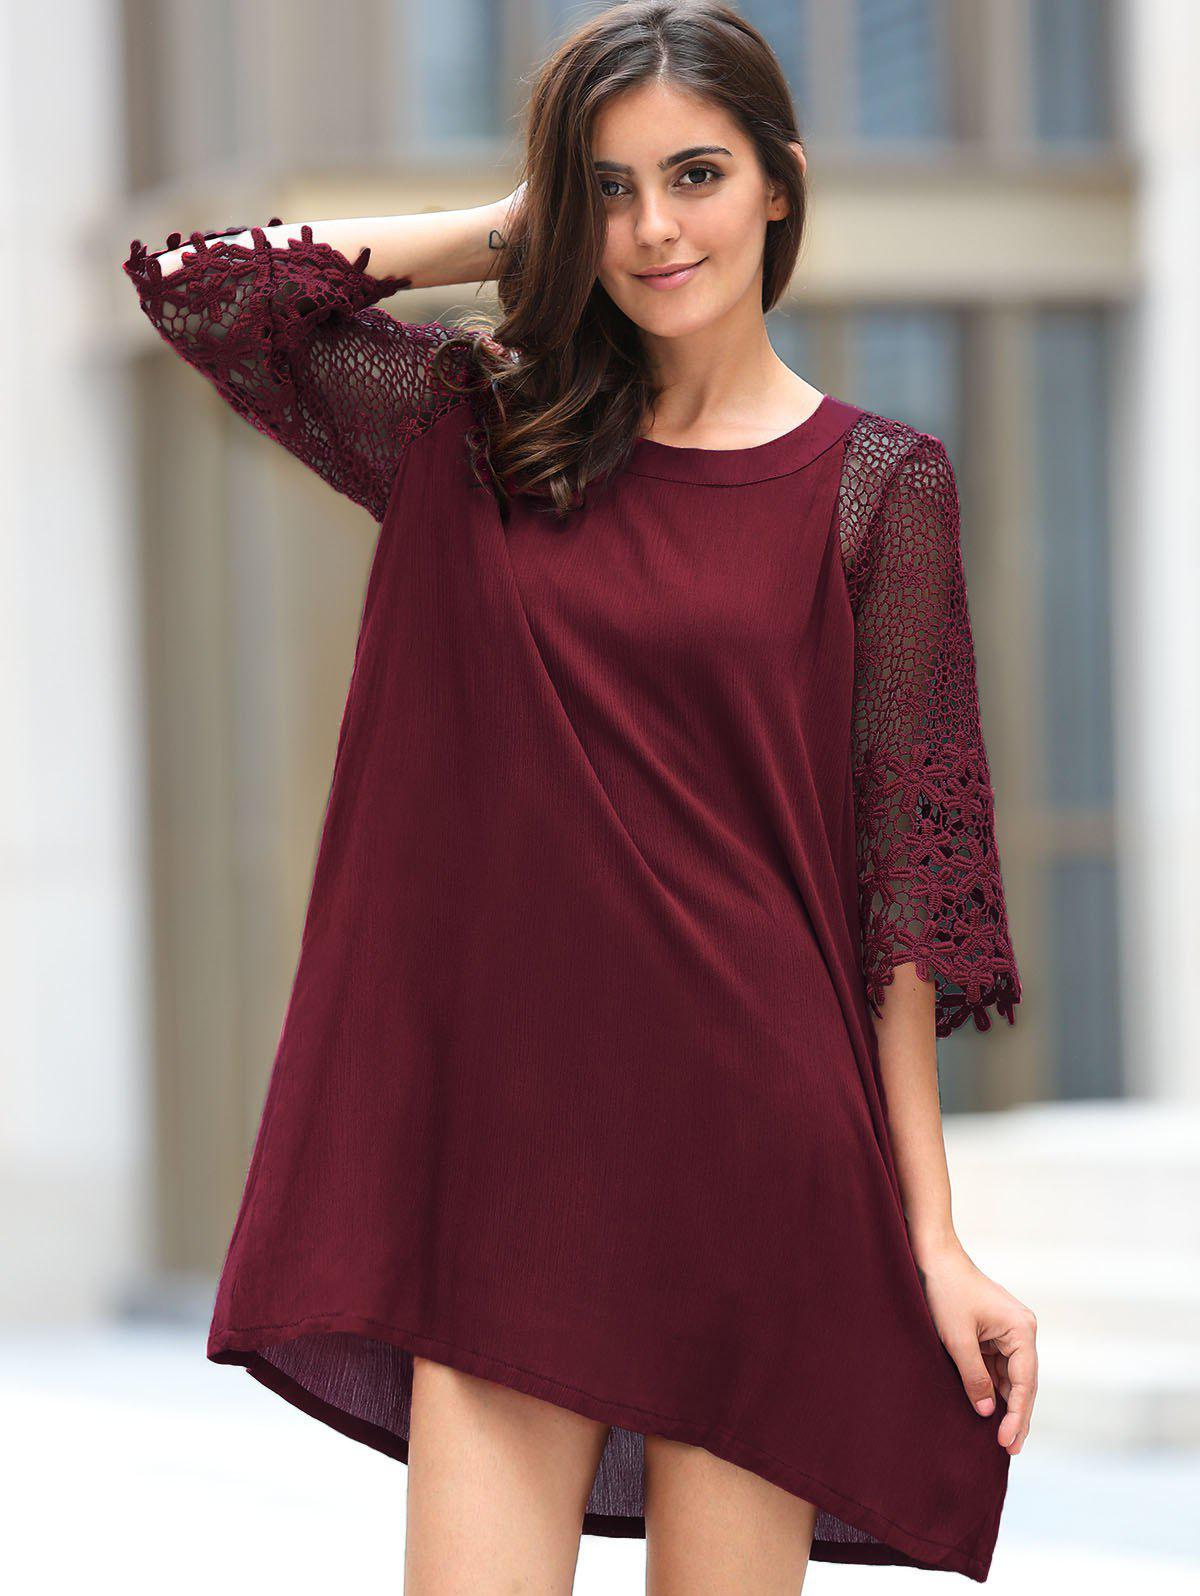 Trendy 3/4 Sleeve Round Collar Loose-Fitting Lace Spliced Women's Dress - WINE RED S